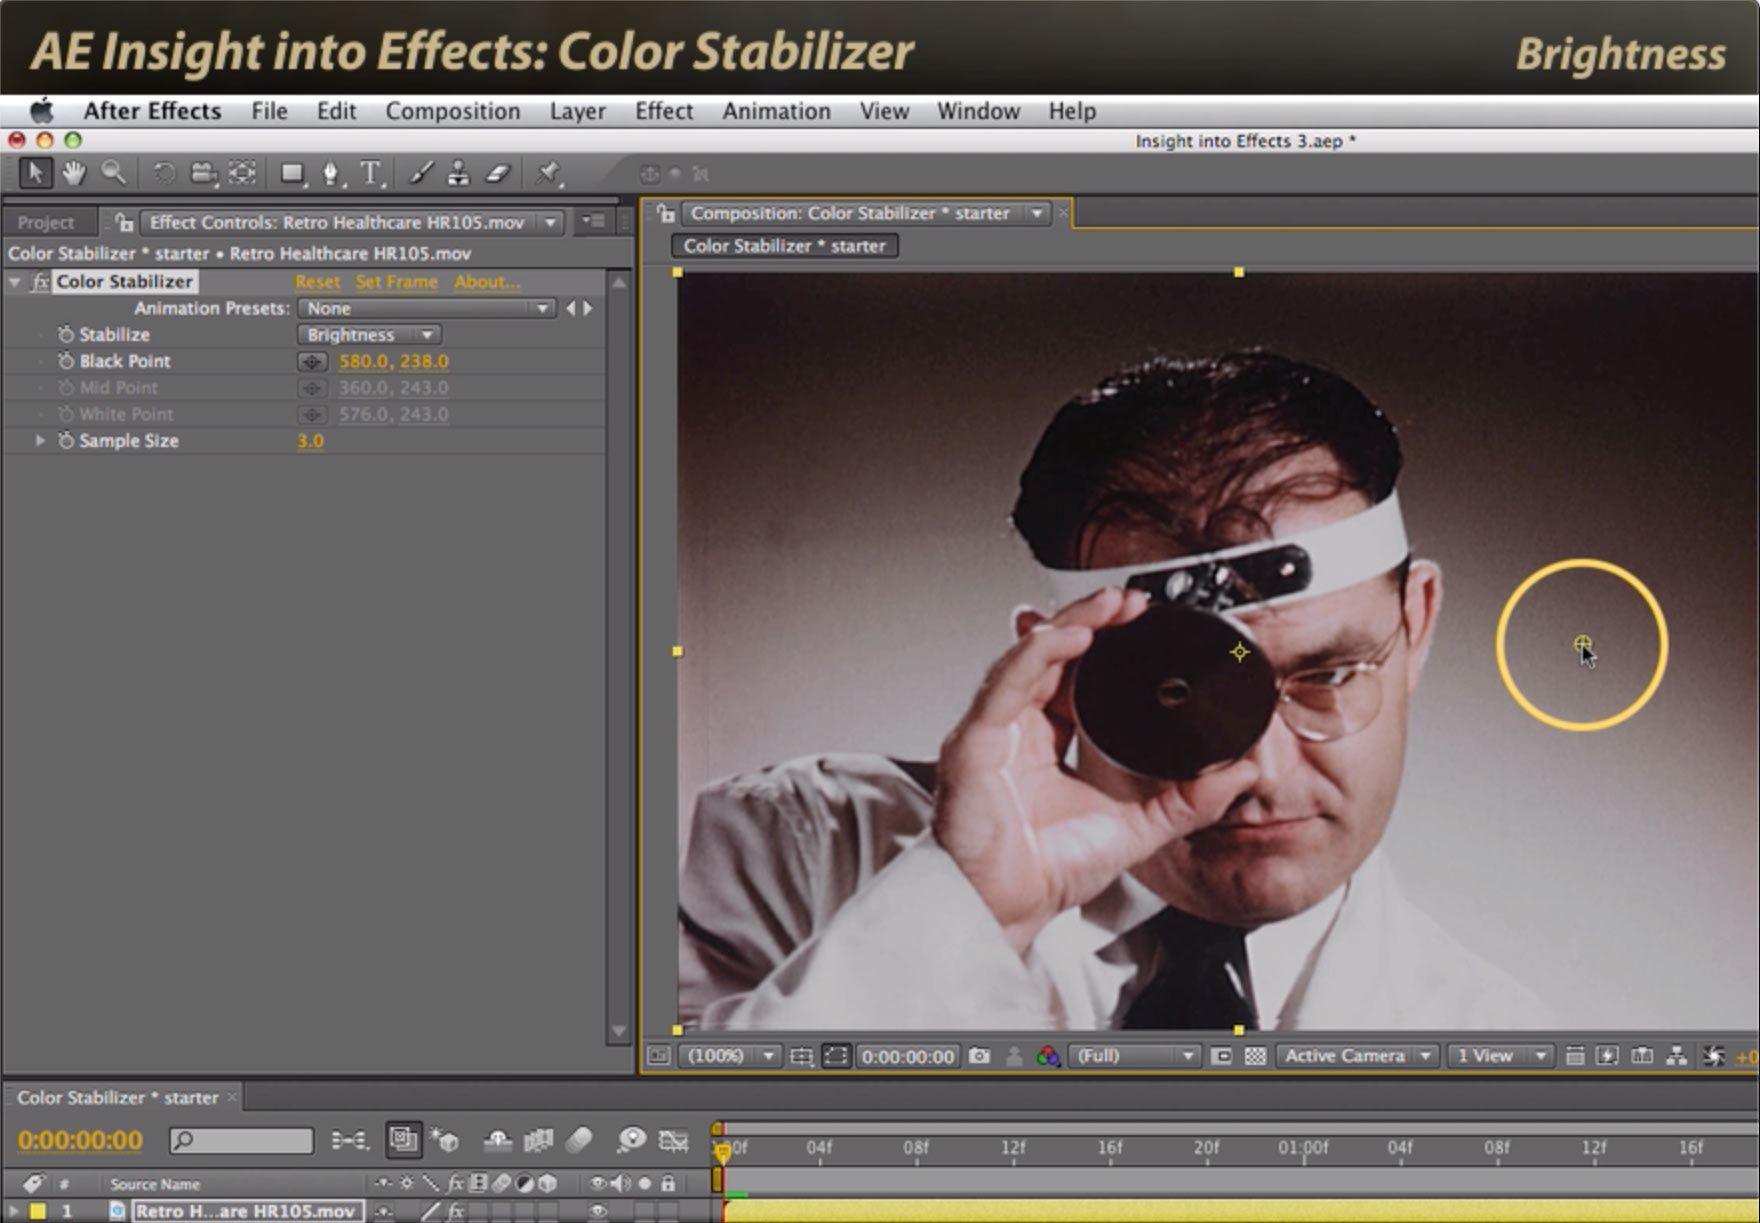 After Effects Classic Course: Color Stabilizer